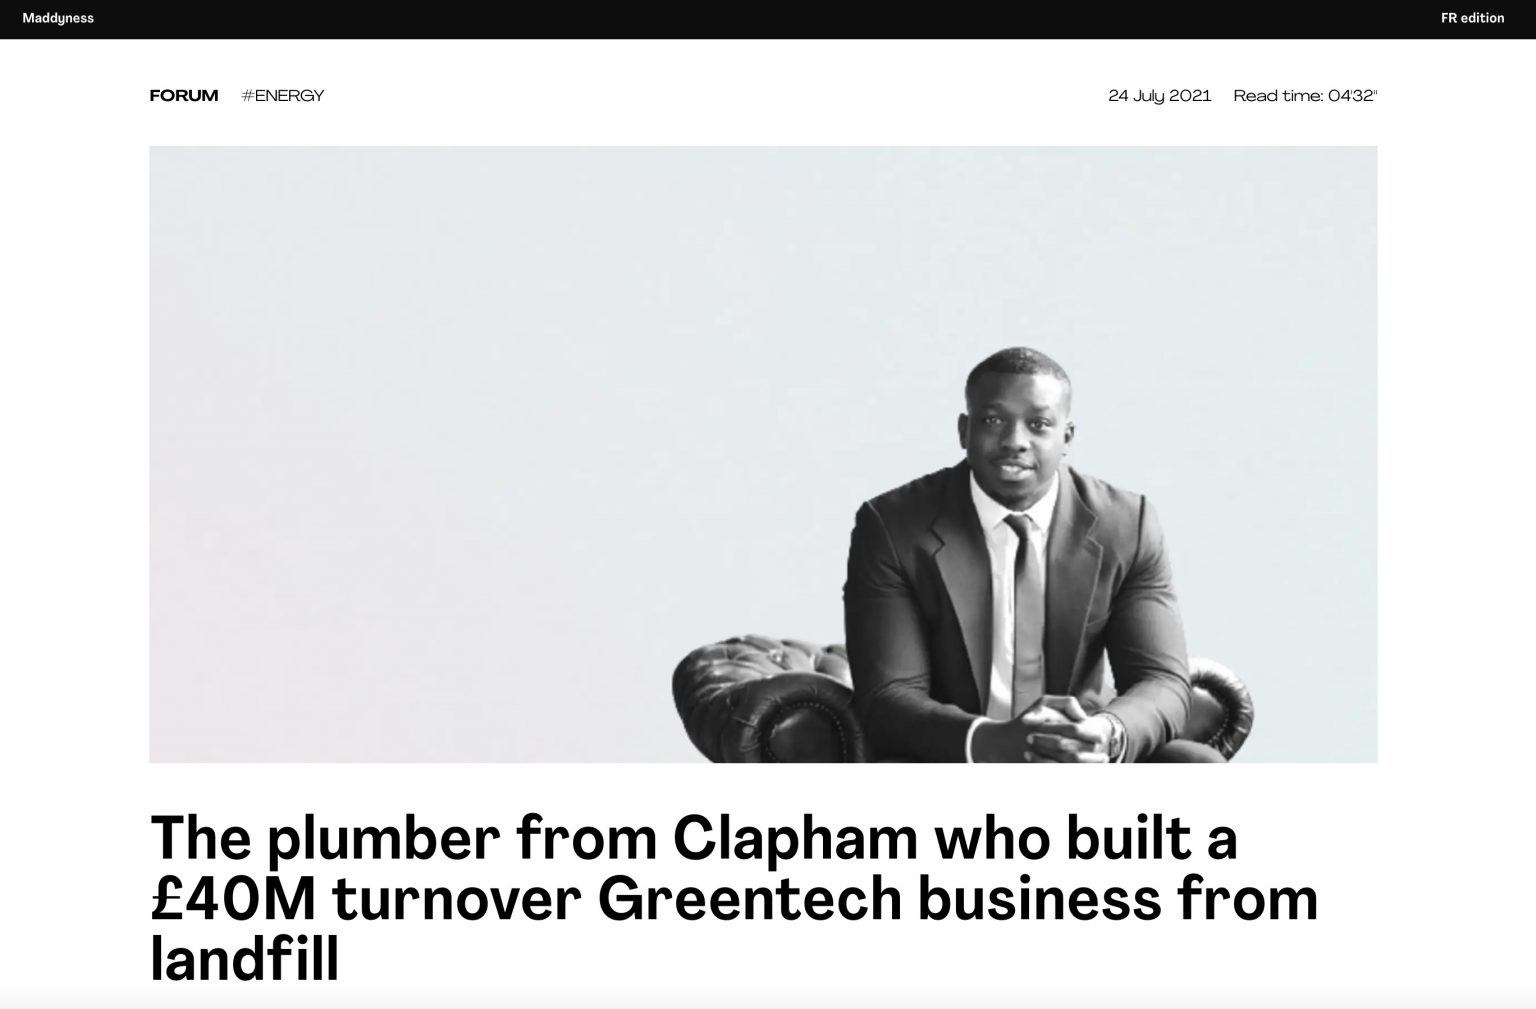 The plumber from Clapham who built a £40M turnover Greentech business from landfill —Maddyness